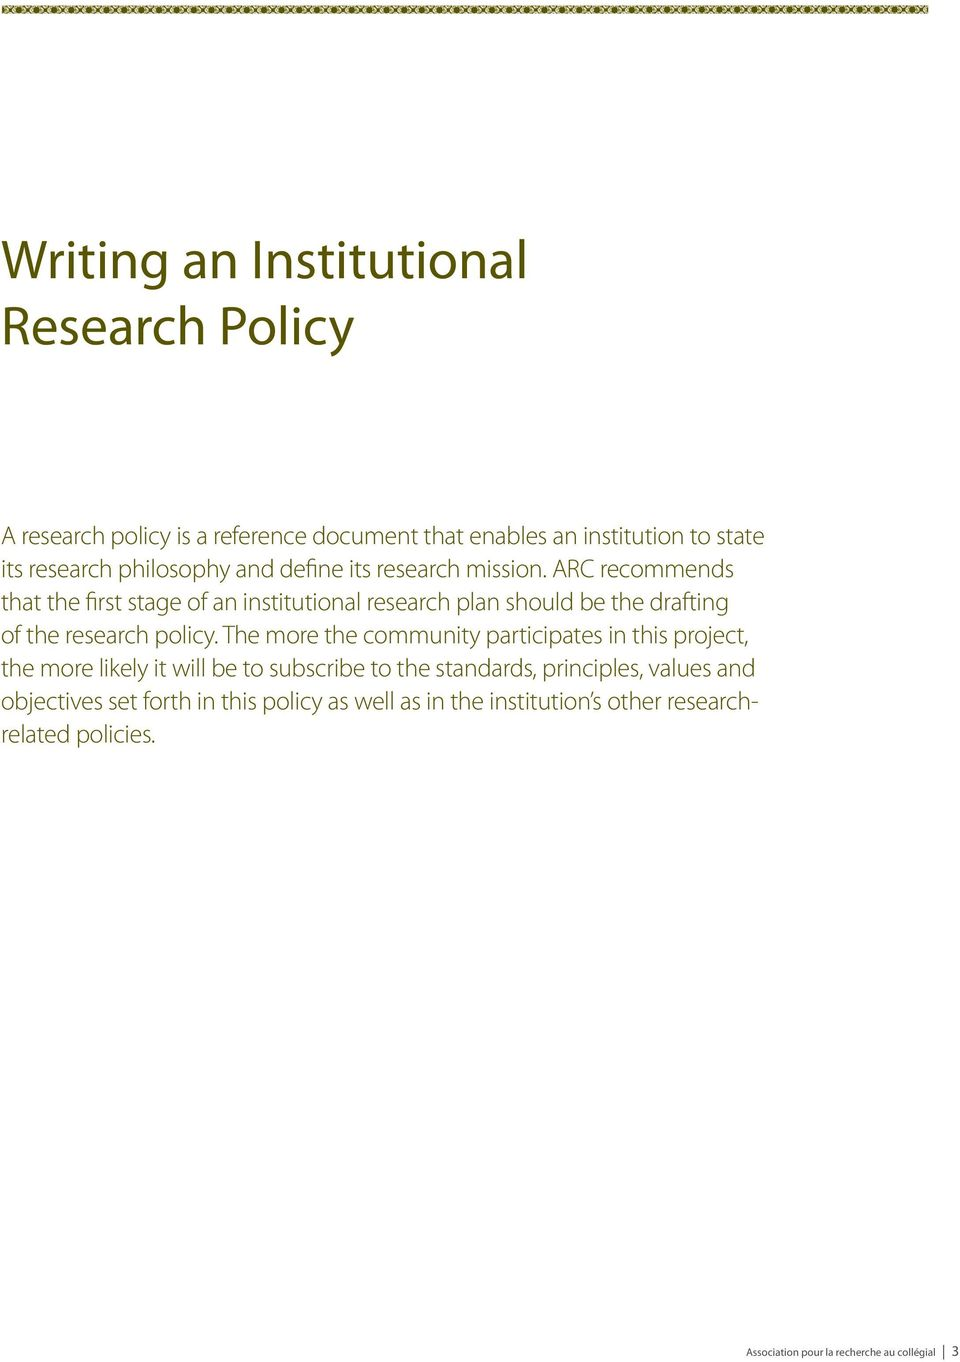 ARC recommends that the first stage of an institutional research plan should be the drafting of the research policy.